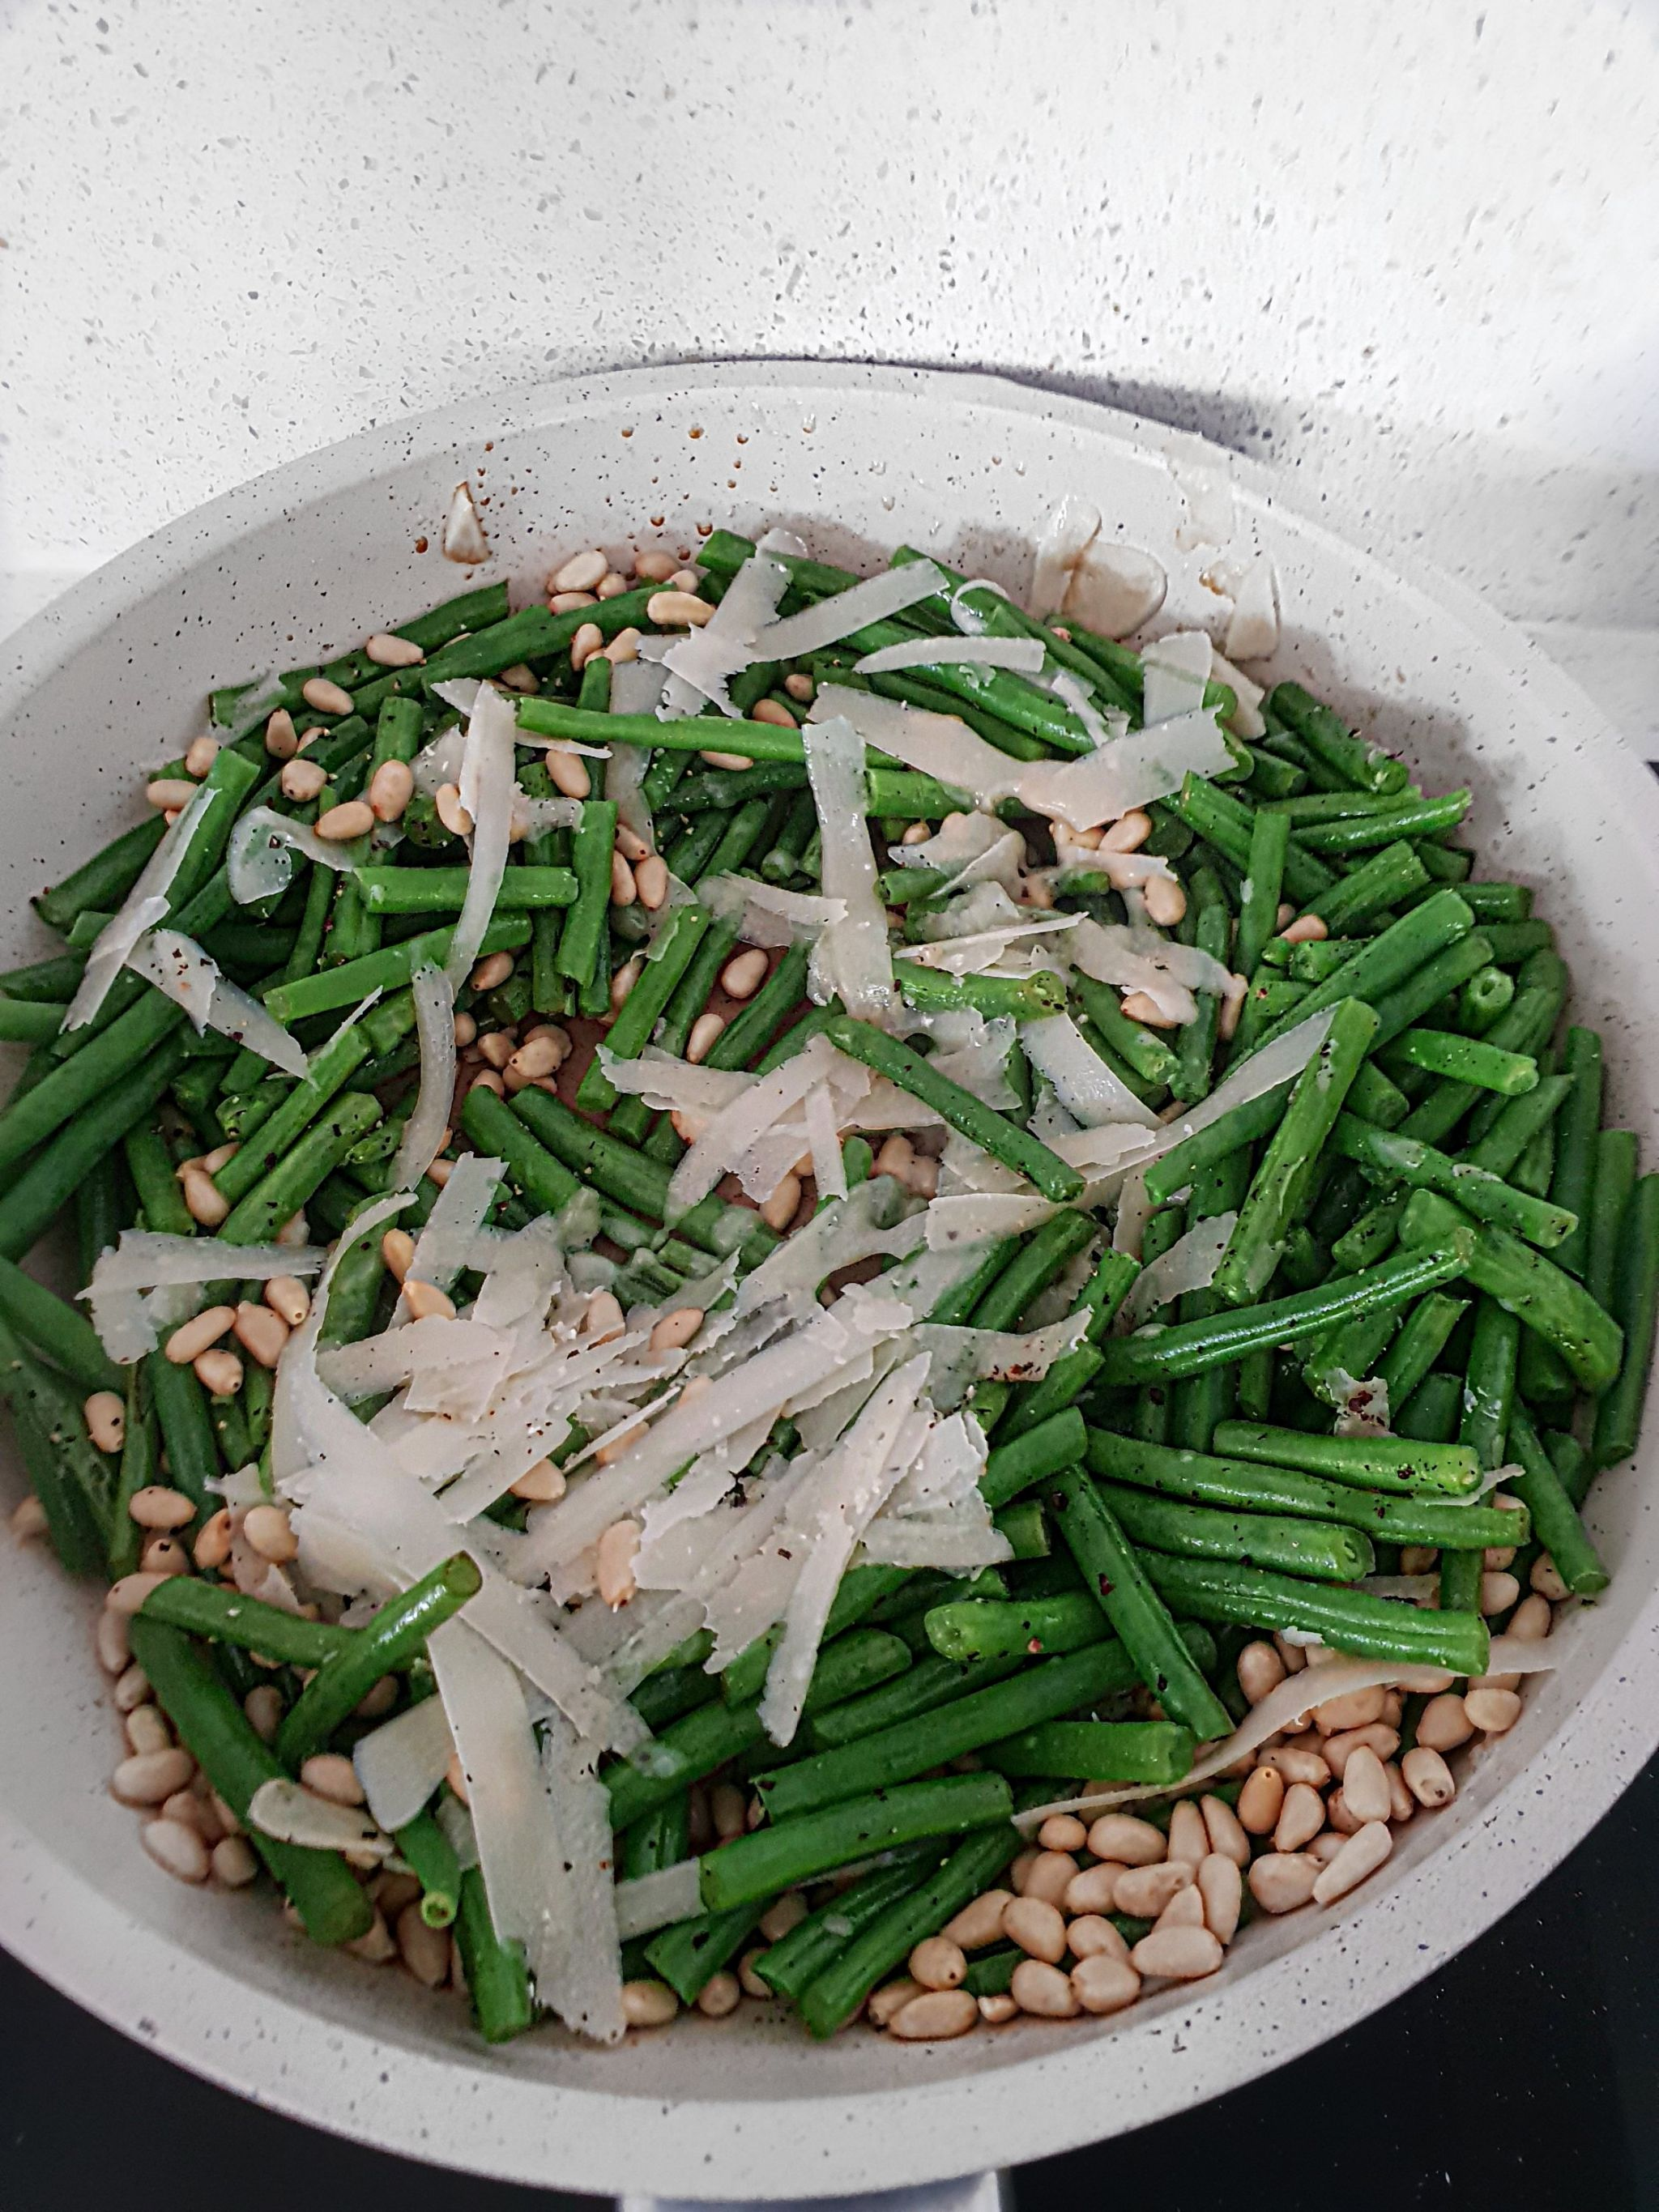 Vegelicious – Green Beans